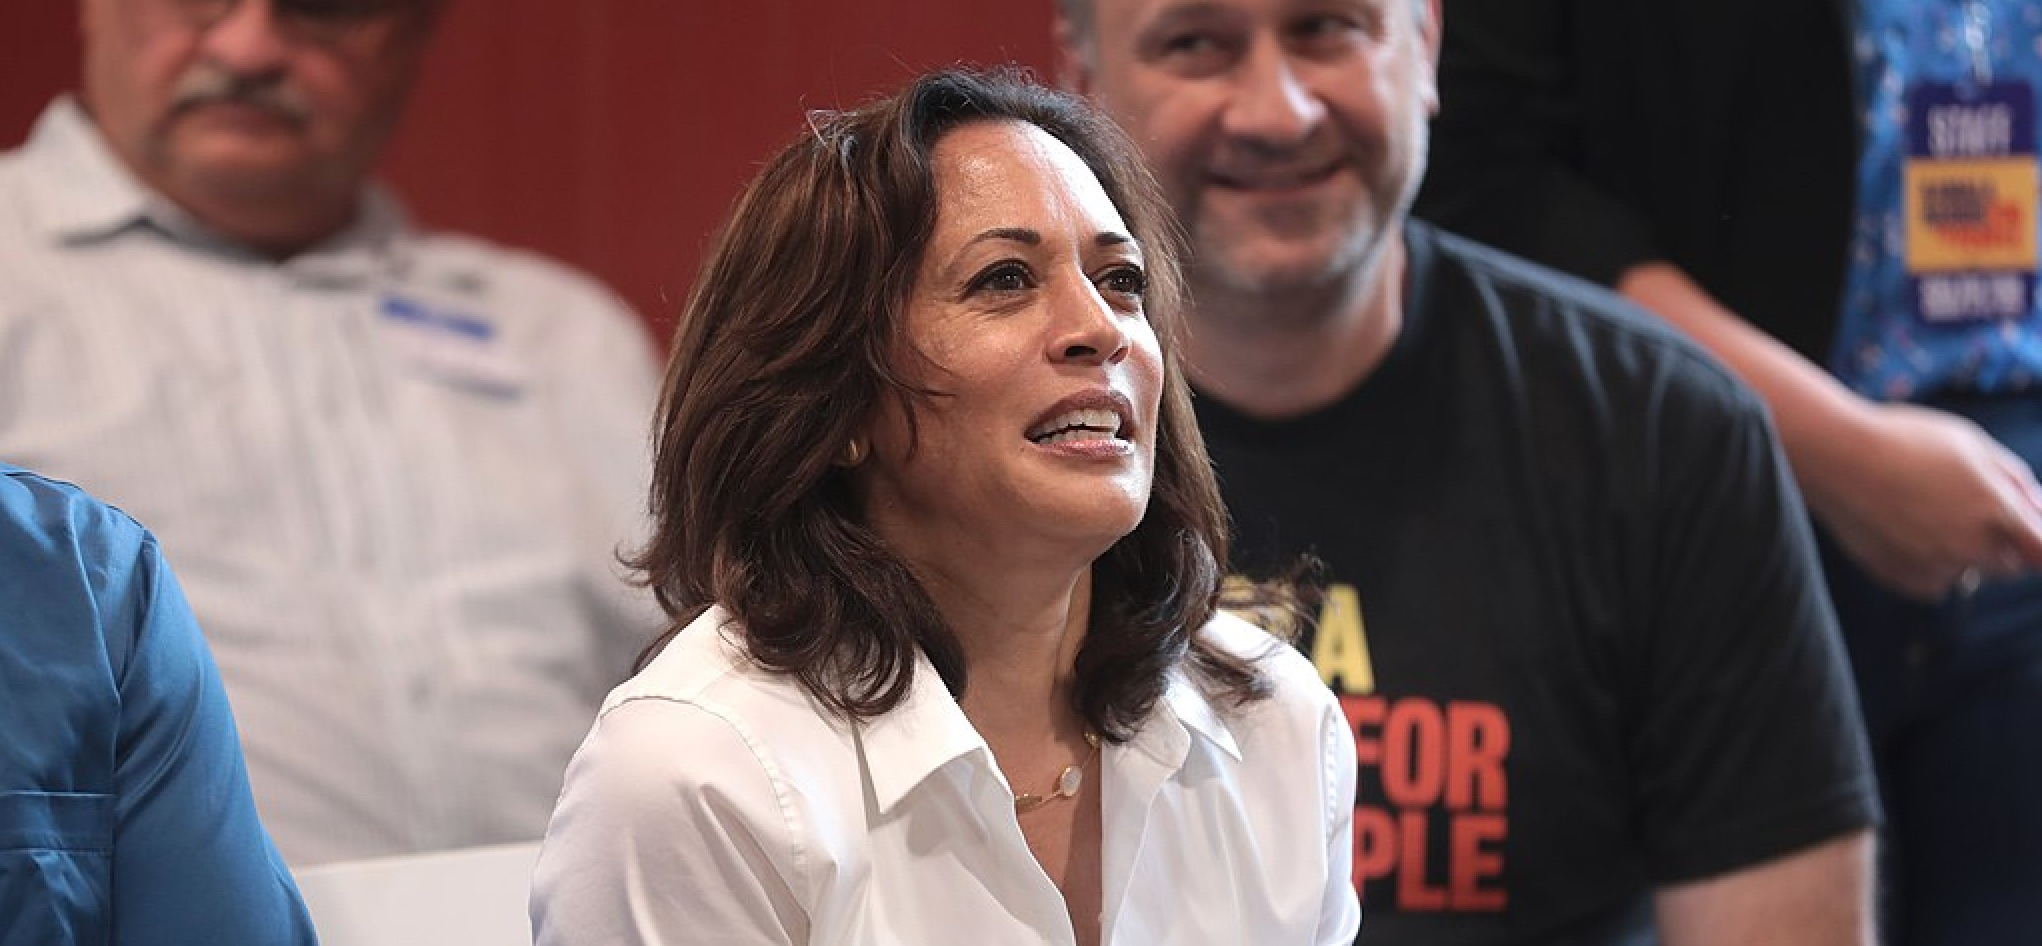 Kamala the Mattress Did Not Quite Sleep Her Way to the Top | The American Spectator | USA News and PoliticsThe American Spectator | USA News and Politics